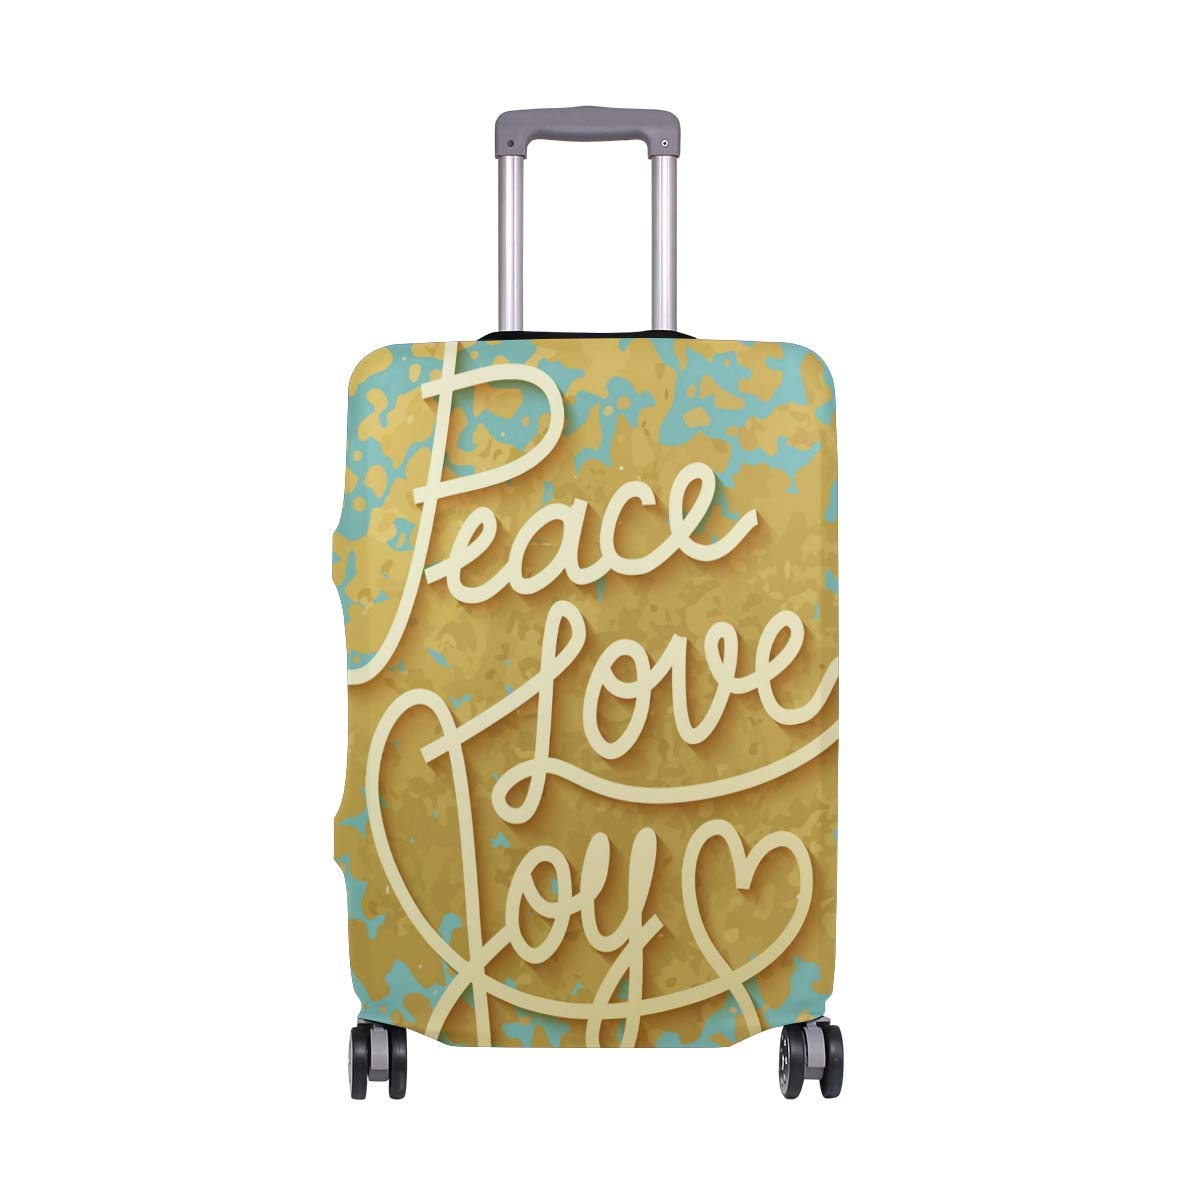 My Daily Peace Love Joy Luggage Cover Fits 24-26 Inch Suitcase Spandex Travel Protector M